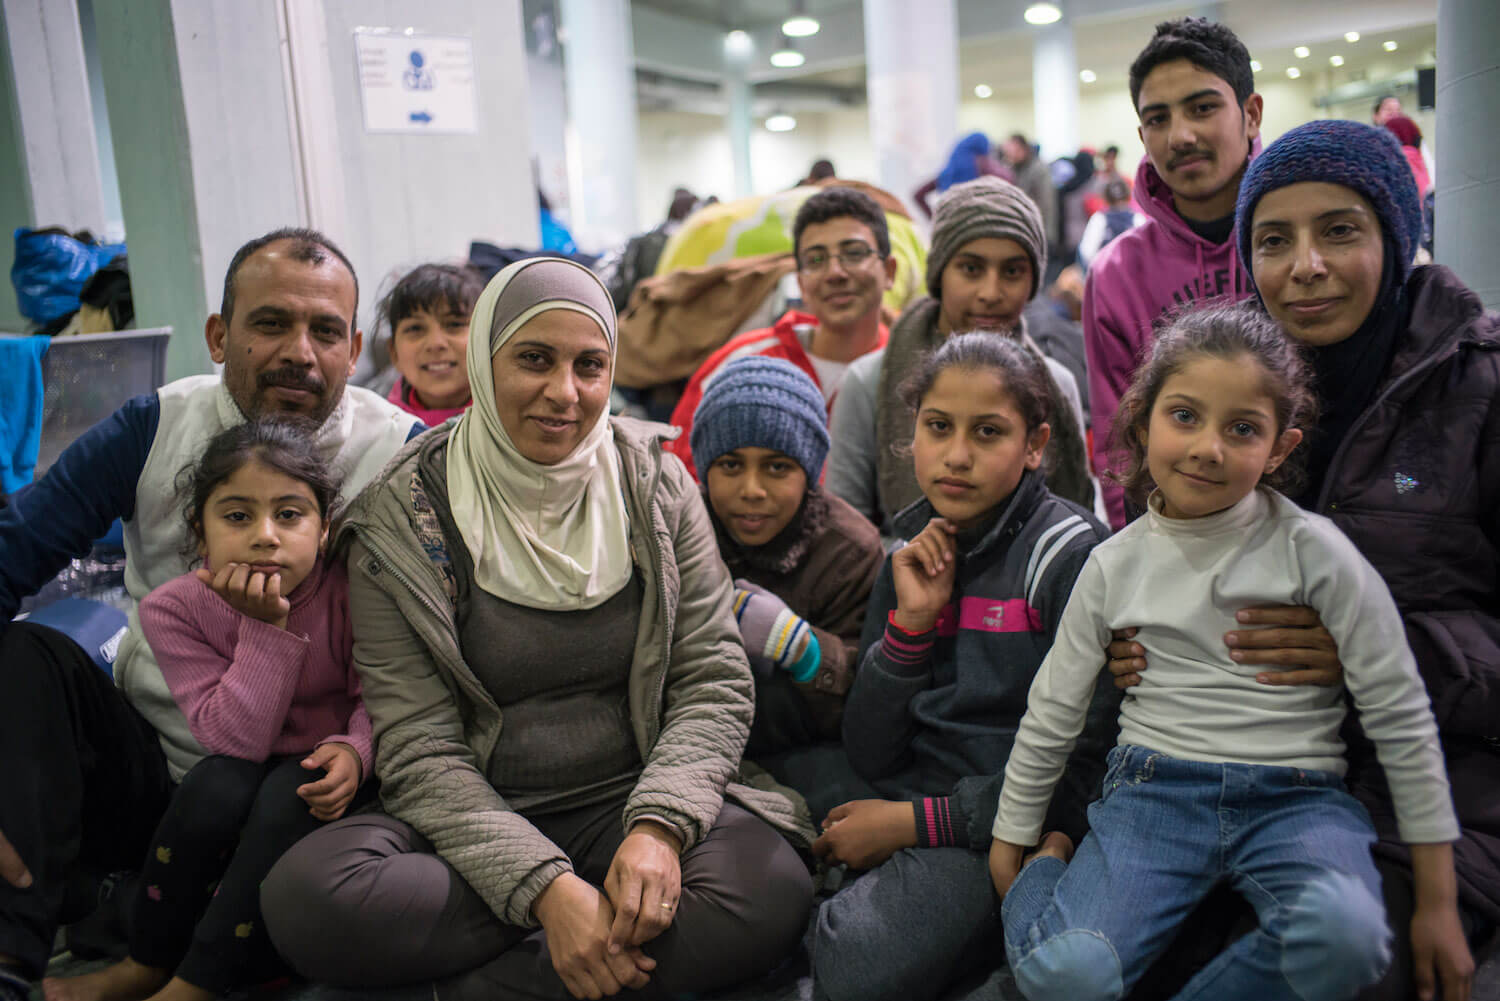 A Loving Refugee Family